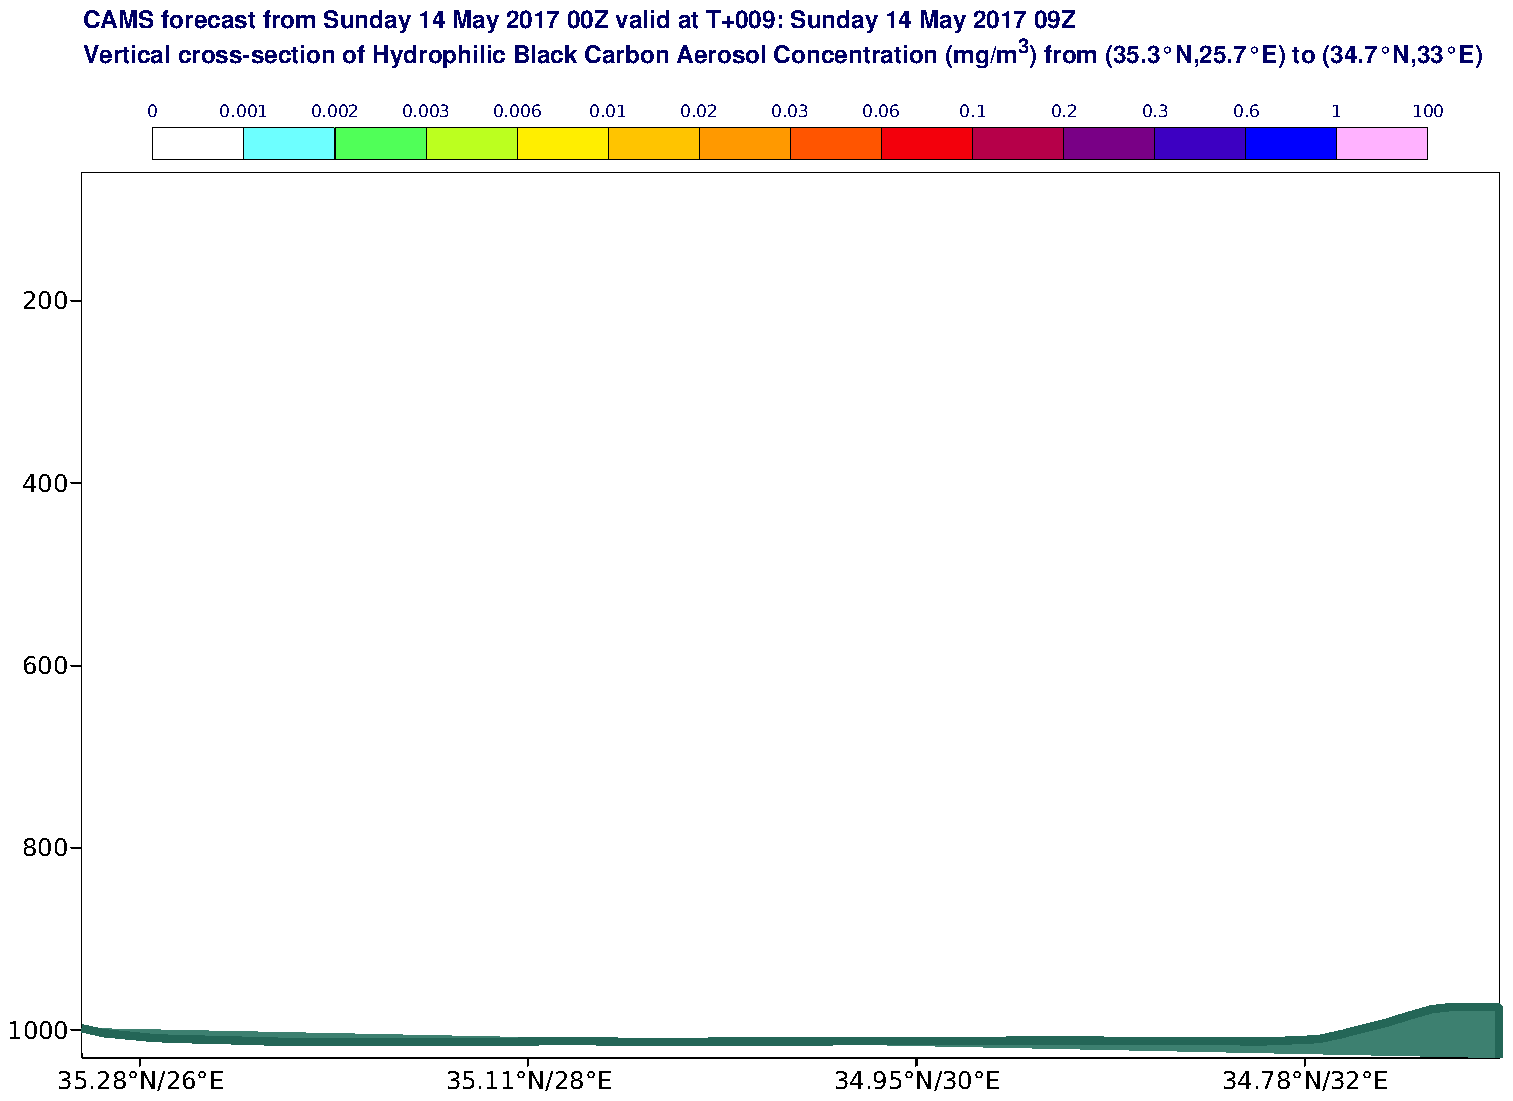 Vertical cross-section of Hydrophilic Black Carbon Aerosol Concentration (mg/m3) valid at T9 - 2017-05-14 09:00